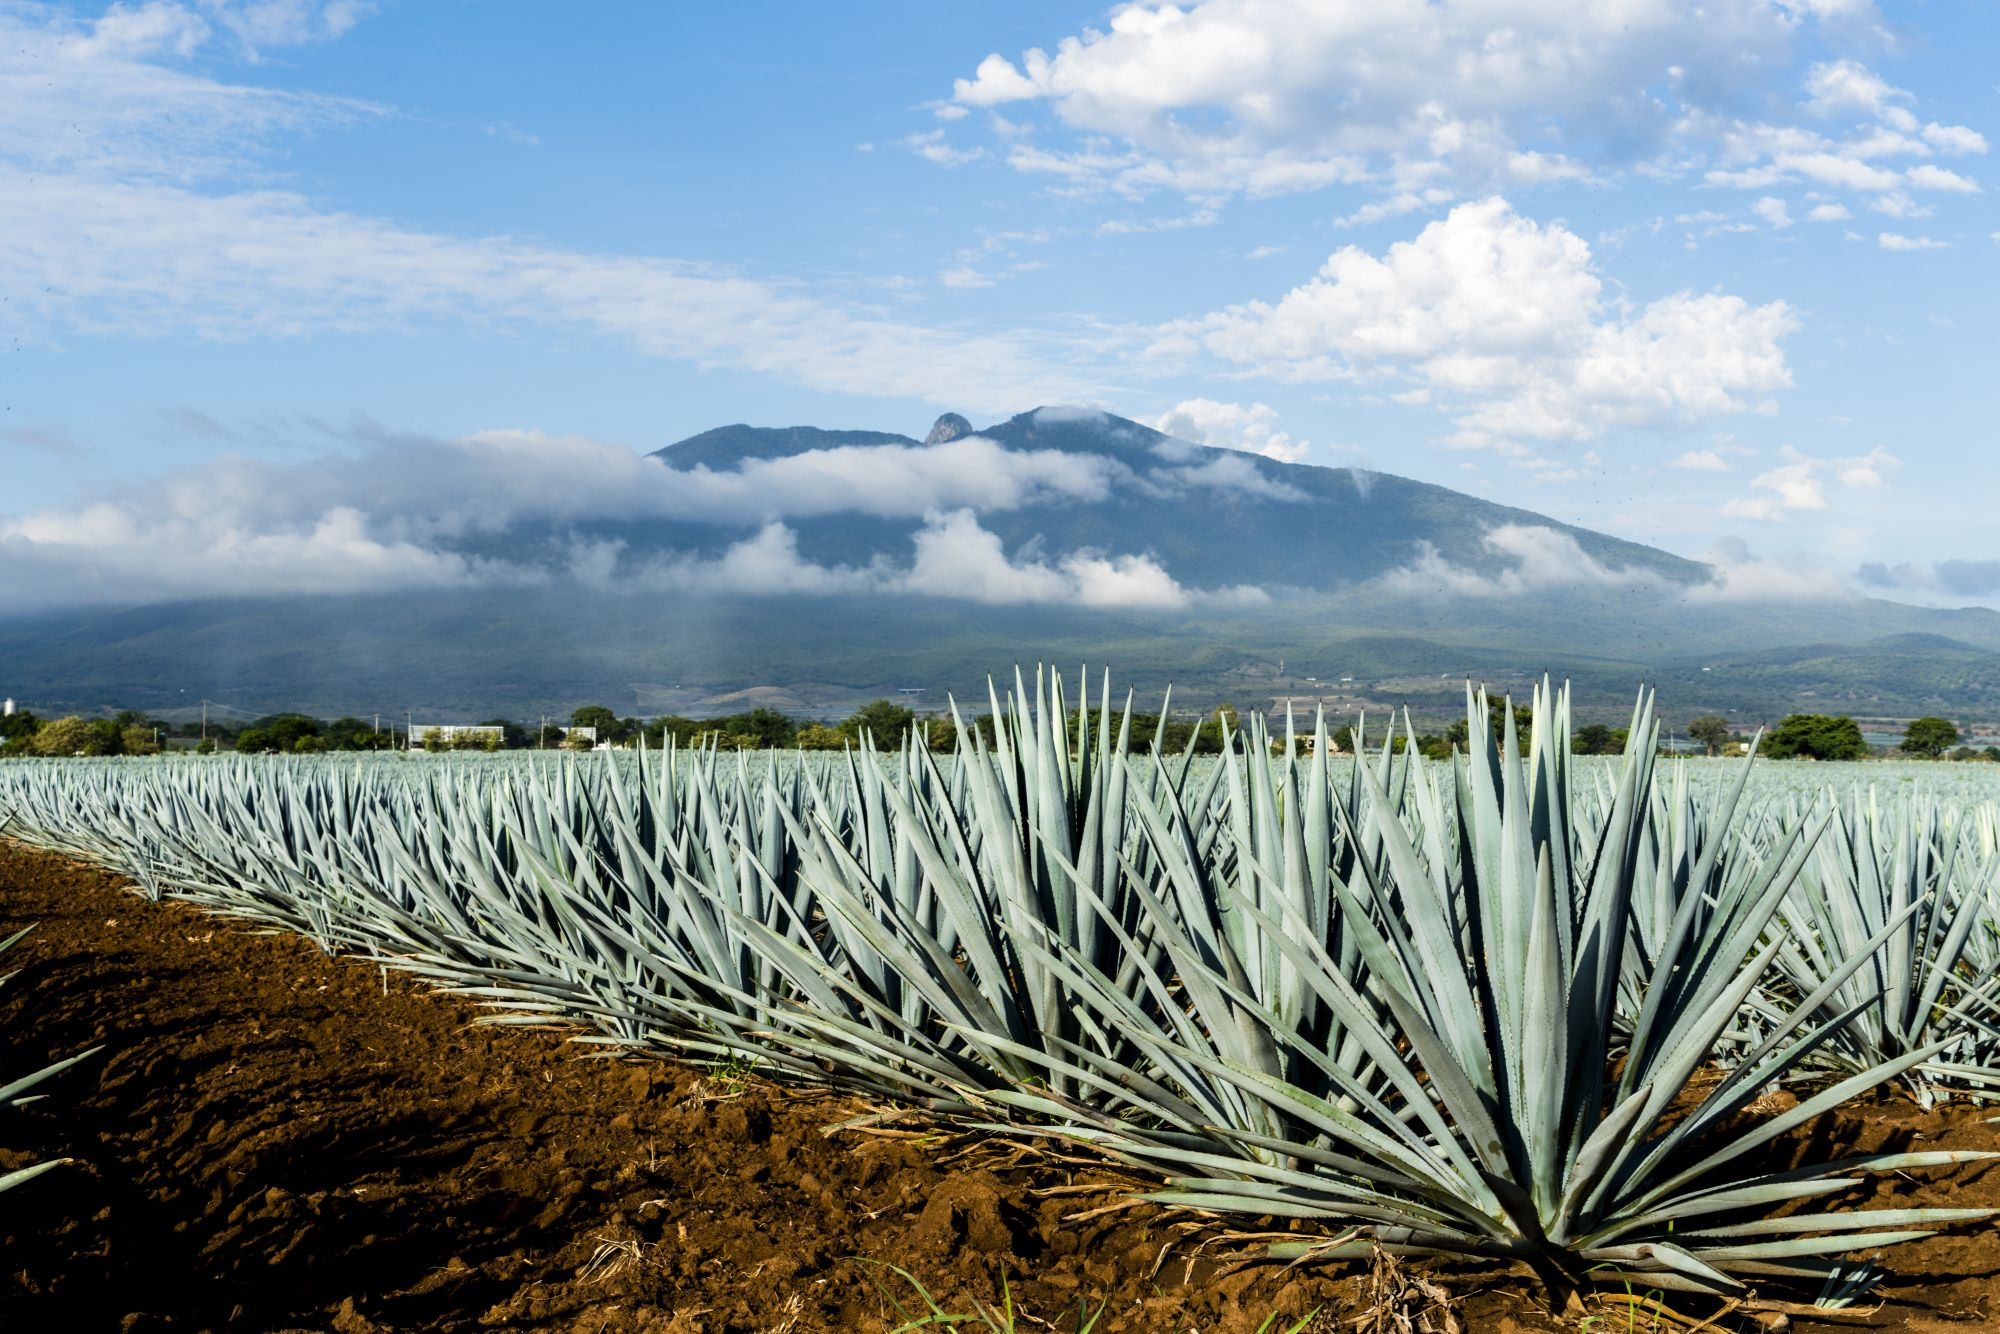 Taste of Mexico: Food, Wine & Tequila Tours 2019 - 2020 -  tequila plant